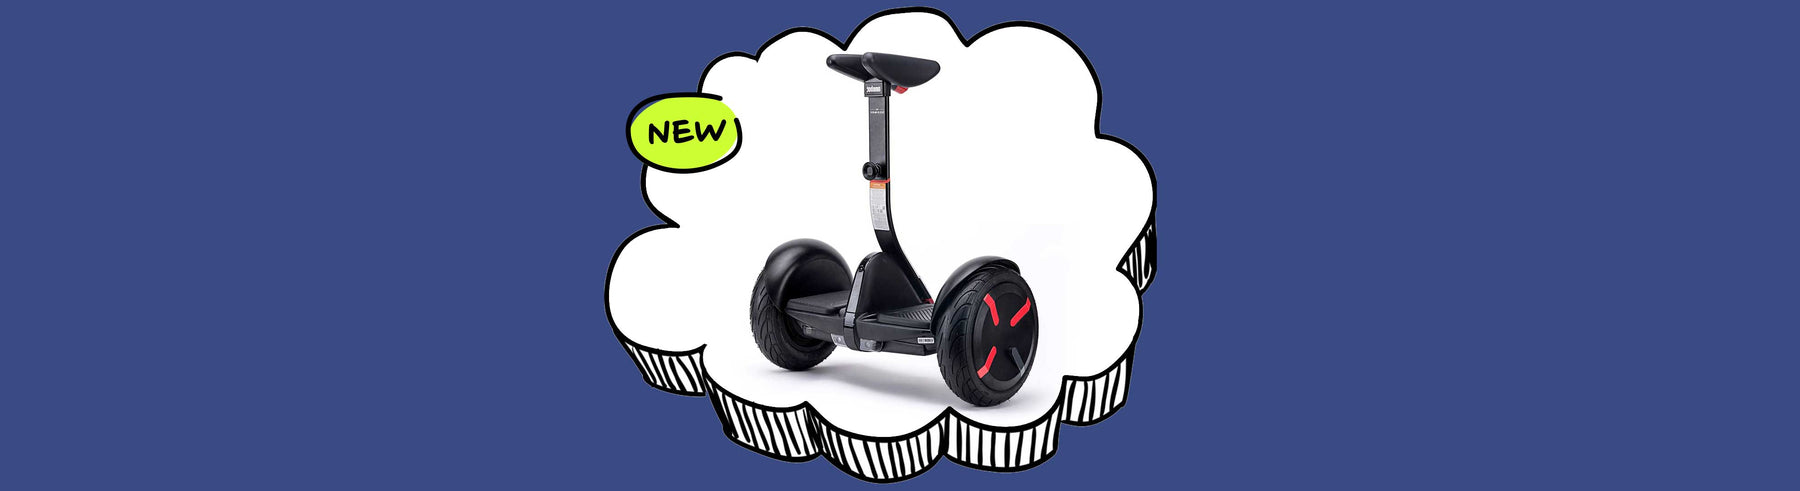 Lowest prices on Segway products